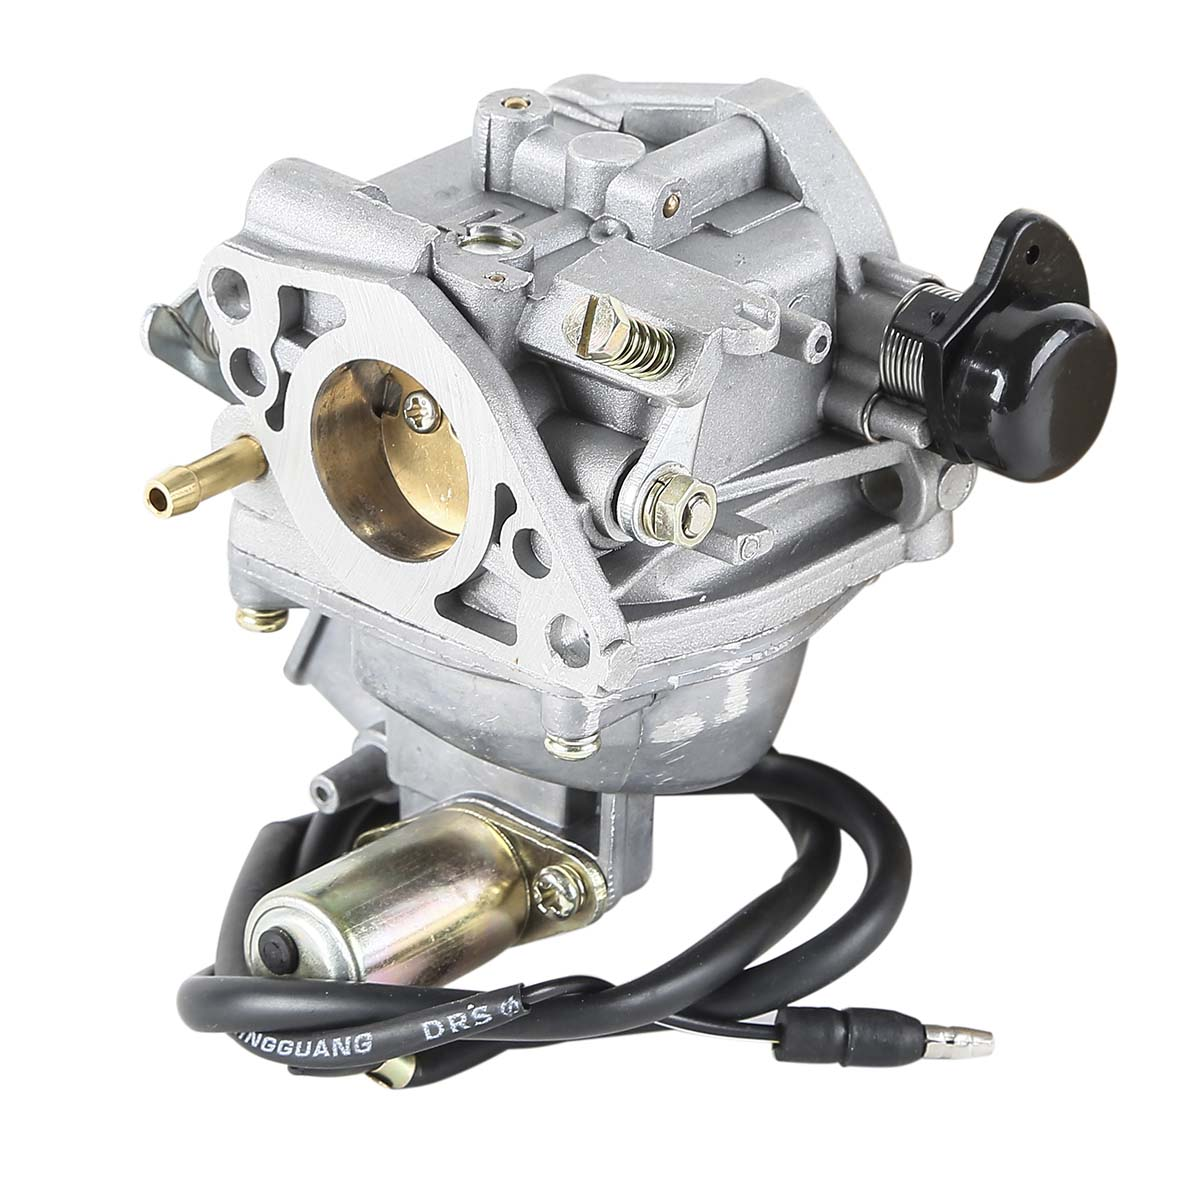 V Twin Quad Engine: Carburetor Fits Honda GX610 18 HP GX620 20 HP OHV V Twin